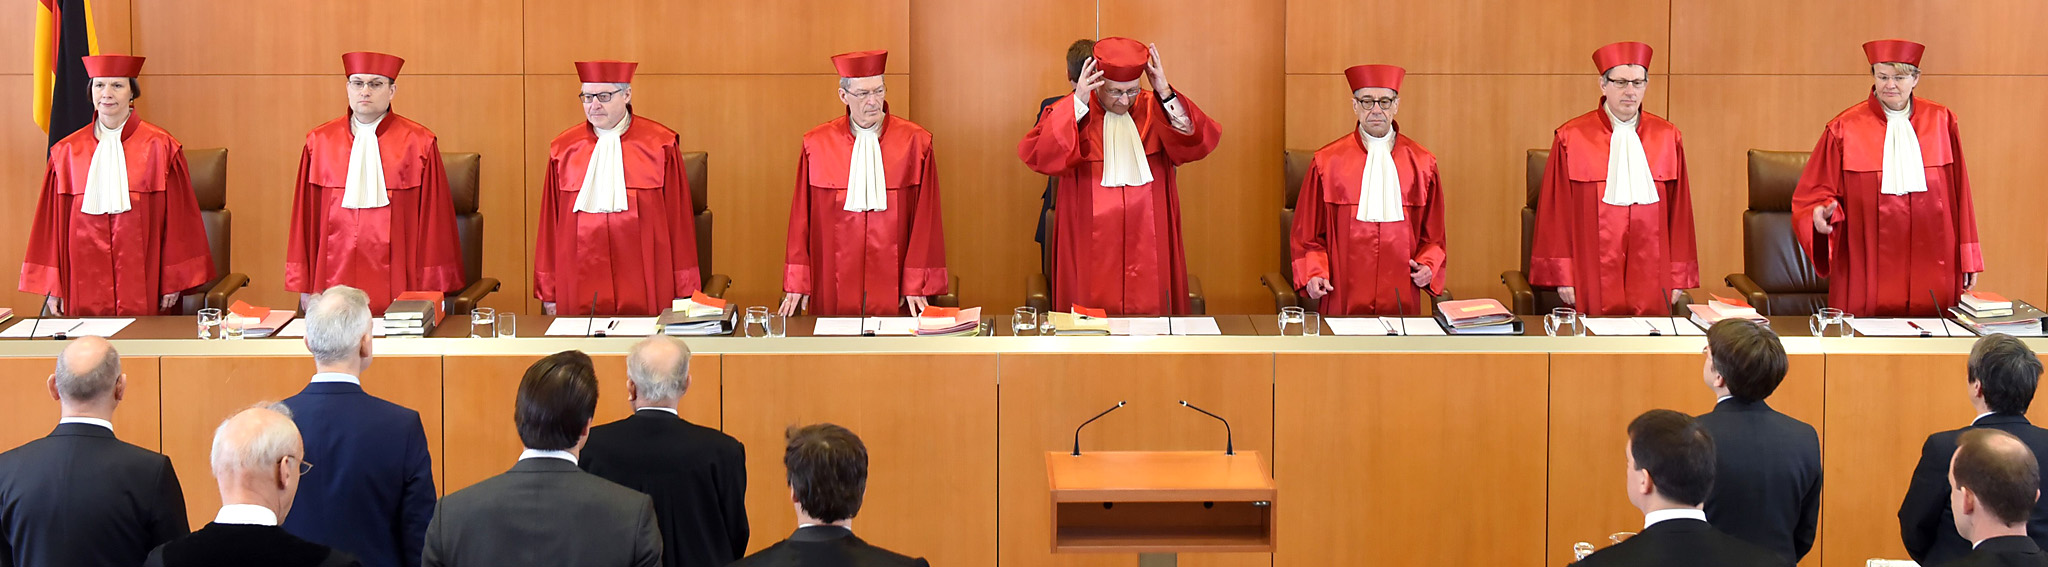 Judges of the first senate of the Federa...Judges of the first senate of the Federal Constitutional Court in Karlsruhe, southwestern Germany, arrive to open a hearing on the German nuclear phase-out on March 15, 2016 (L-R) Gabriele Britz, Andreas Paulus, Wilhelm Schluckebier, Michael Eichberger, Ferdinand Kirchhof (chairman), Reinhard Gaier, Johannes Masing and Susanne Baer. Three energy giants  went to Germany's top court to challenge the decision by Chancellor Angela Merkel's government to phase out nuclear power after the Fukushima disaster five years ago.